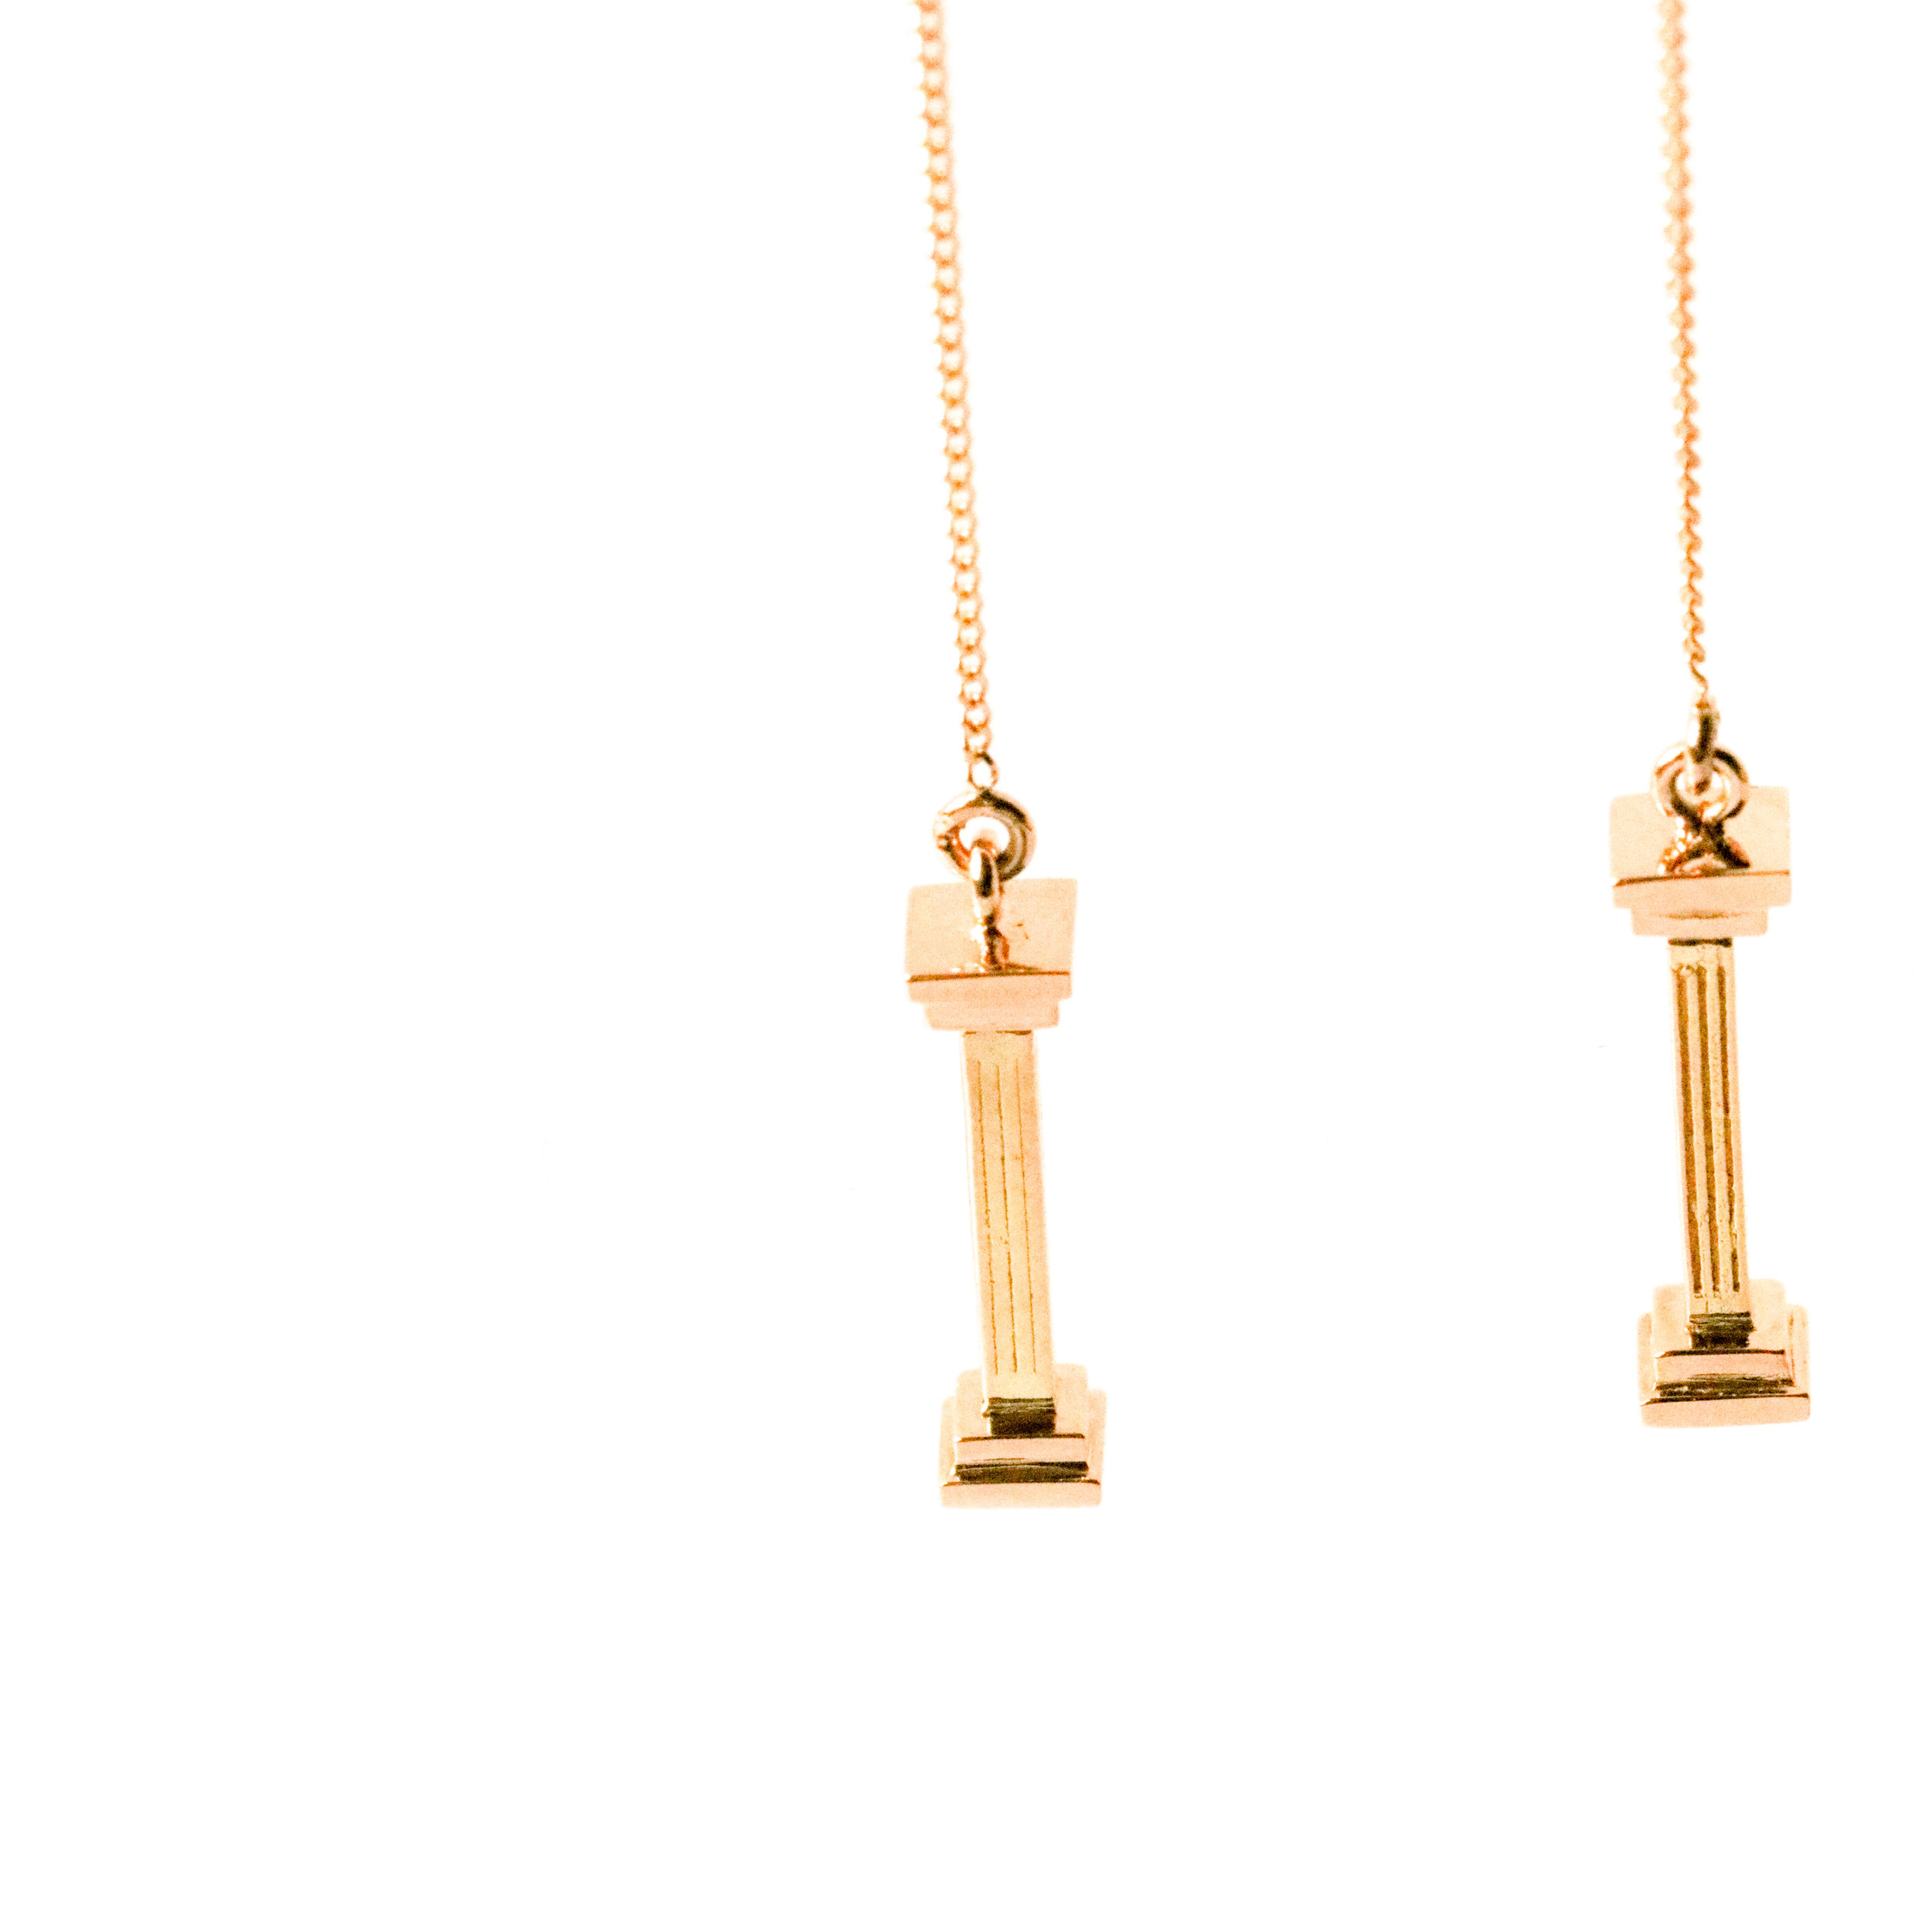 Suspended Colonnade Earrings in 18ct yellow gold